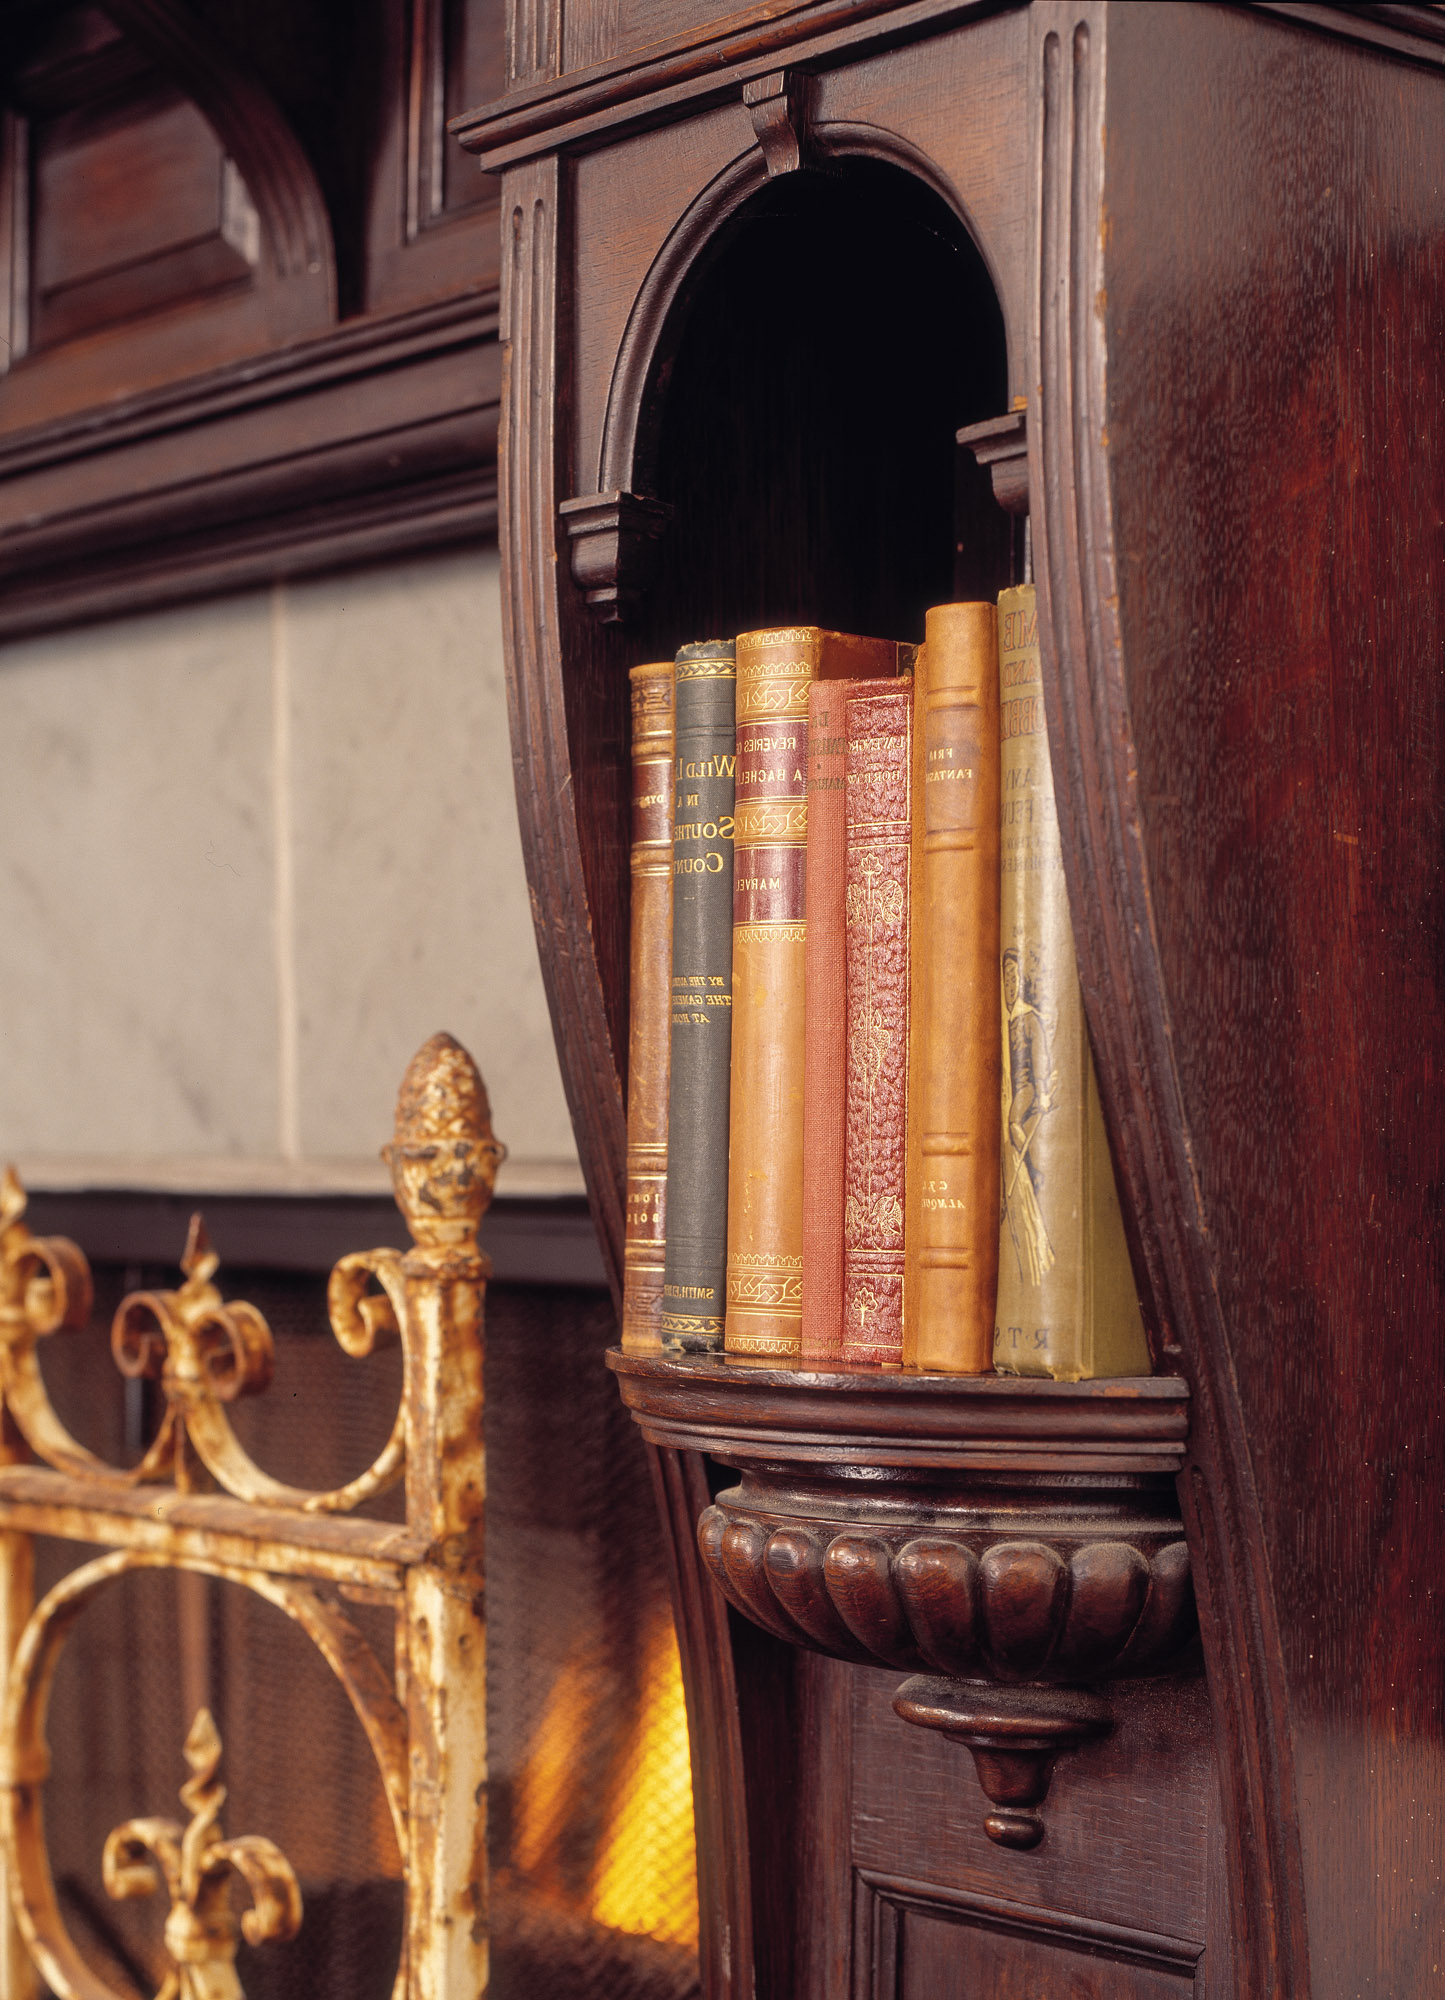 mantel's carving and book niches